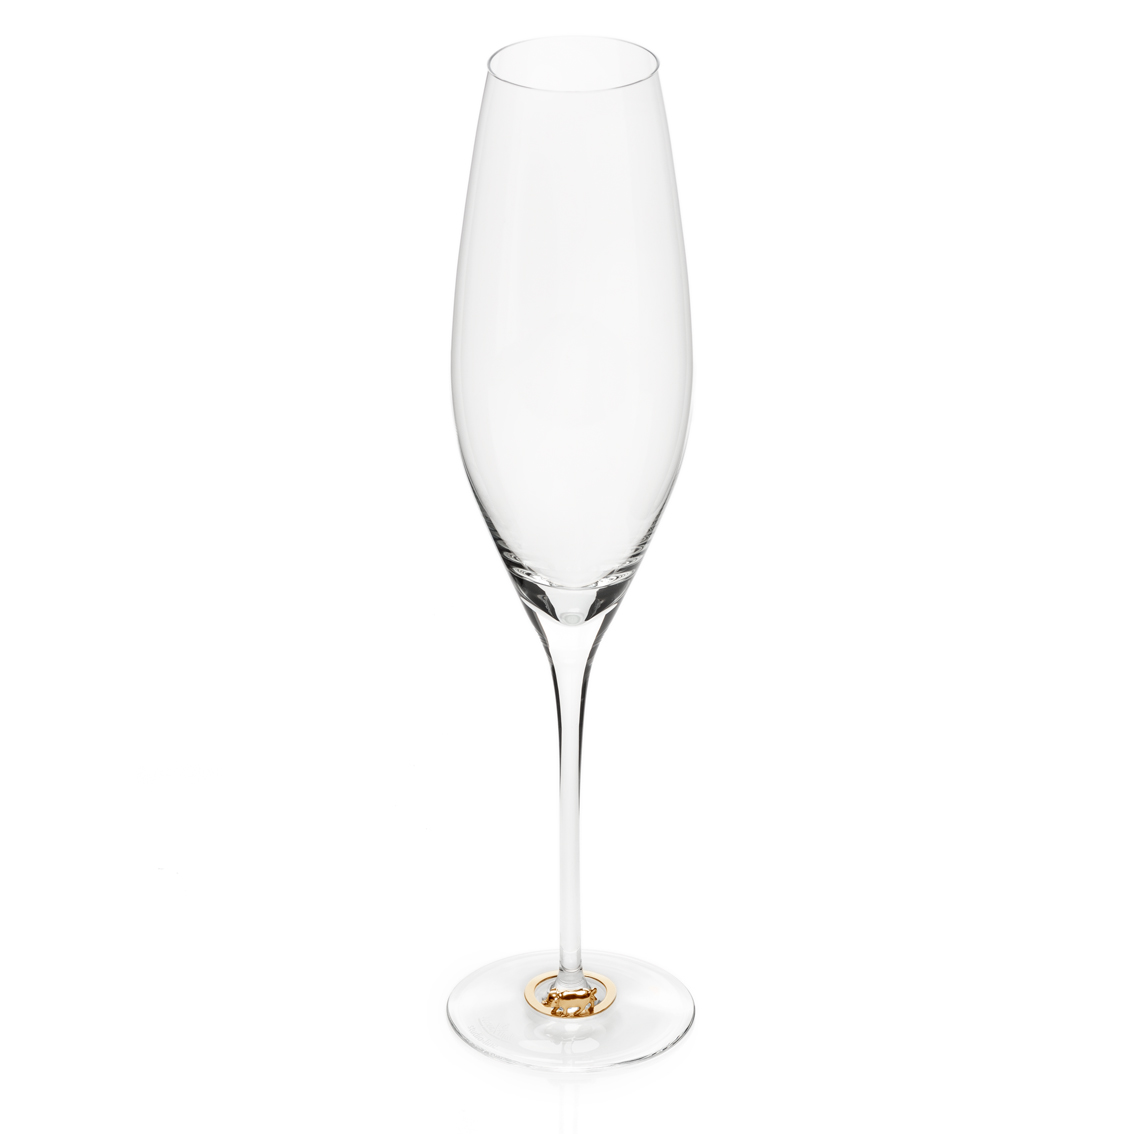 Perfect glas glanz und gloria by beatrice m ller for Tegee glas schaum glanz